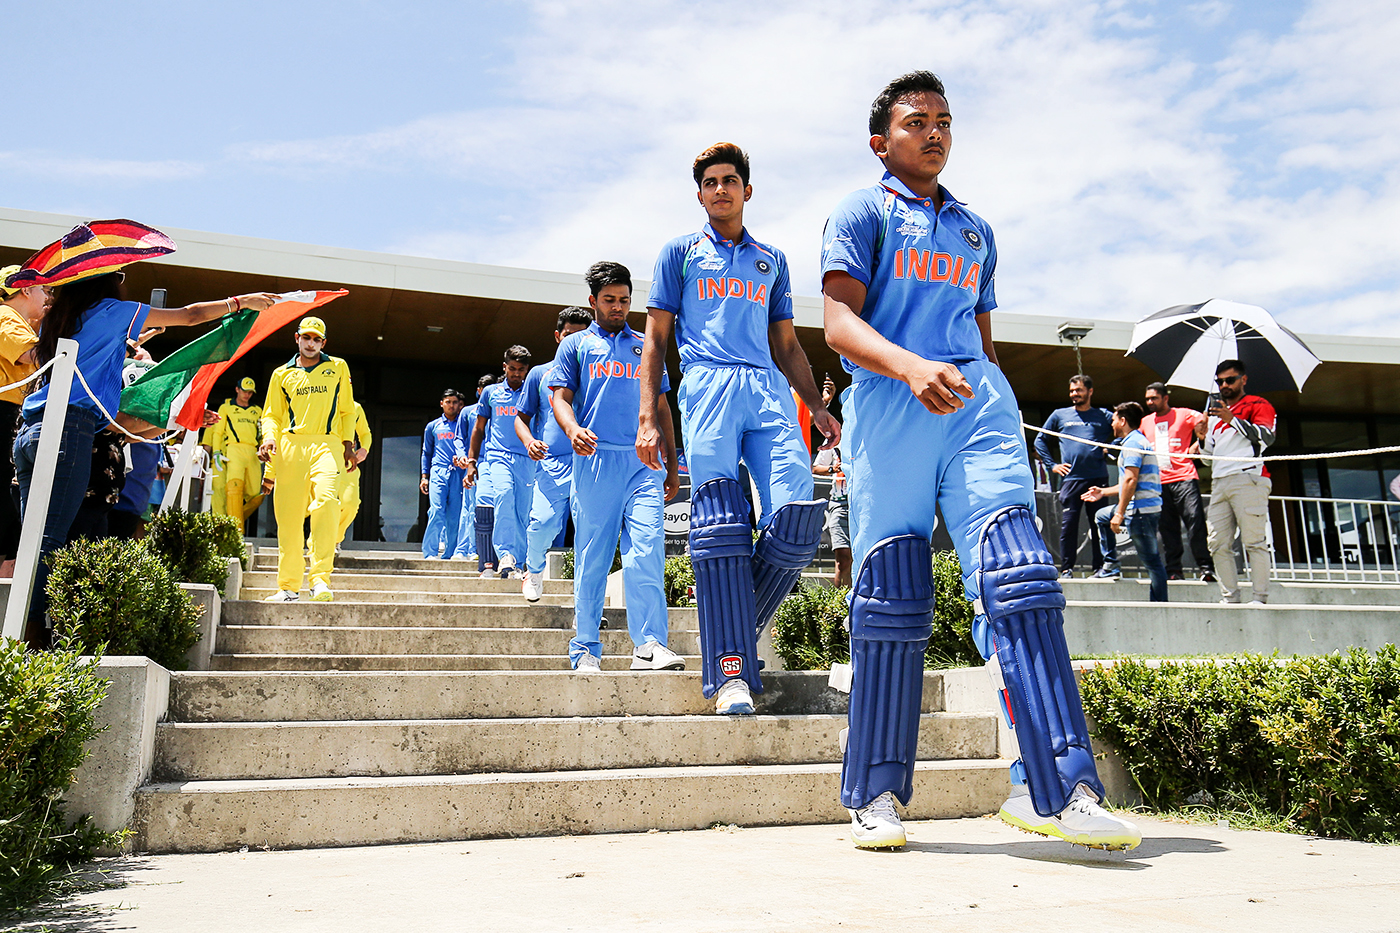 In India, the primary focus of the processes leading up to selection for the U-19 World Cup is not winning the tournament but rather spotting players who have what it takes to succeed at higher levels